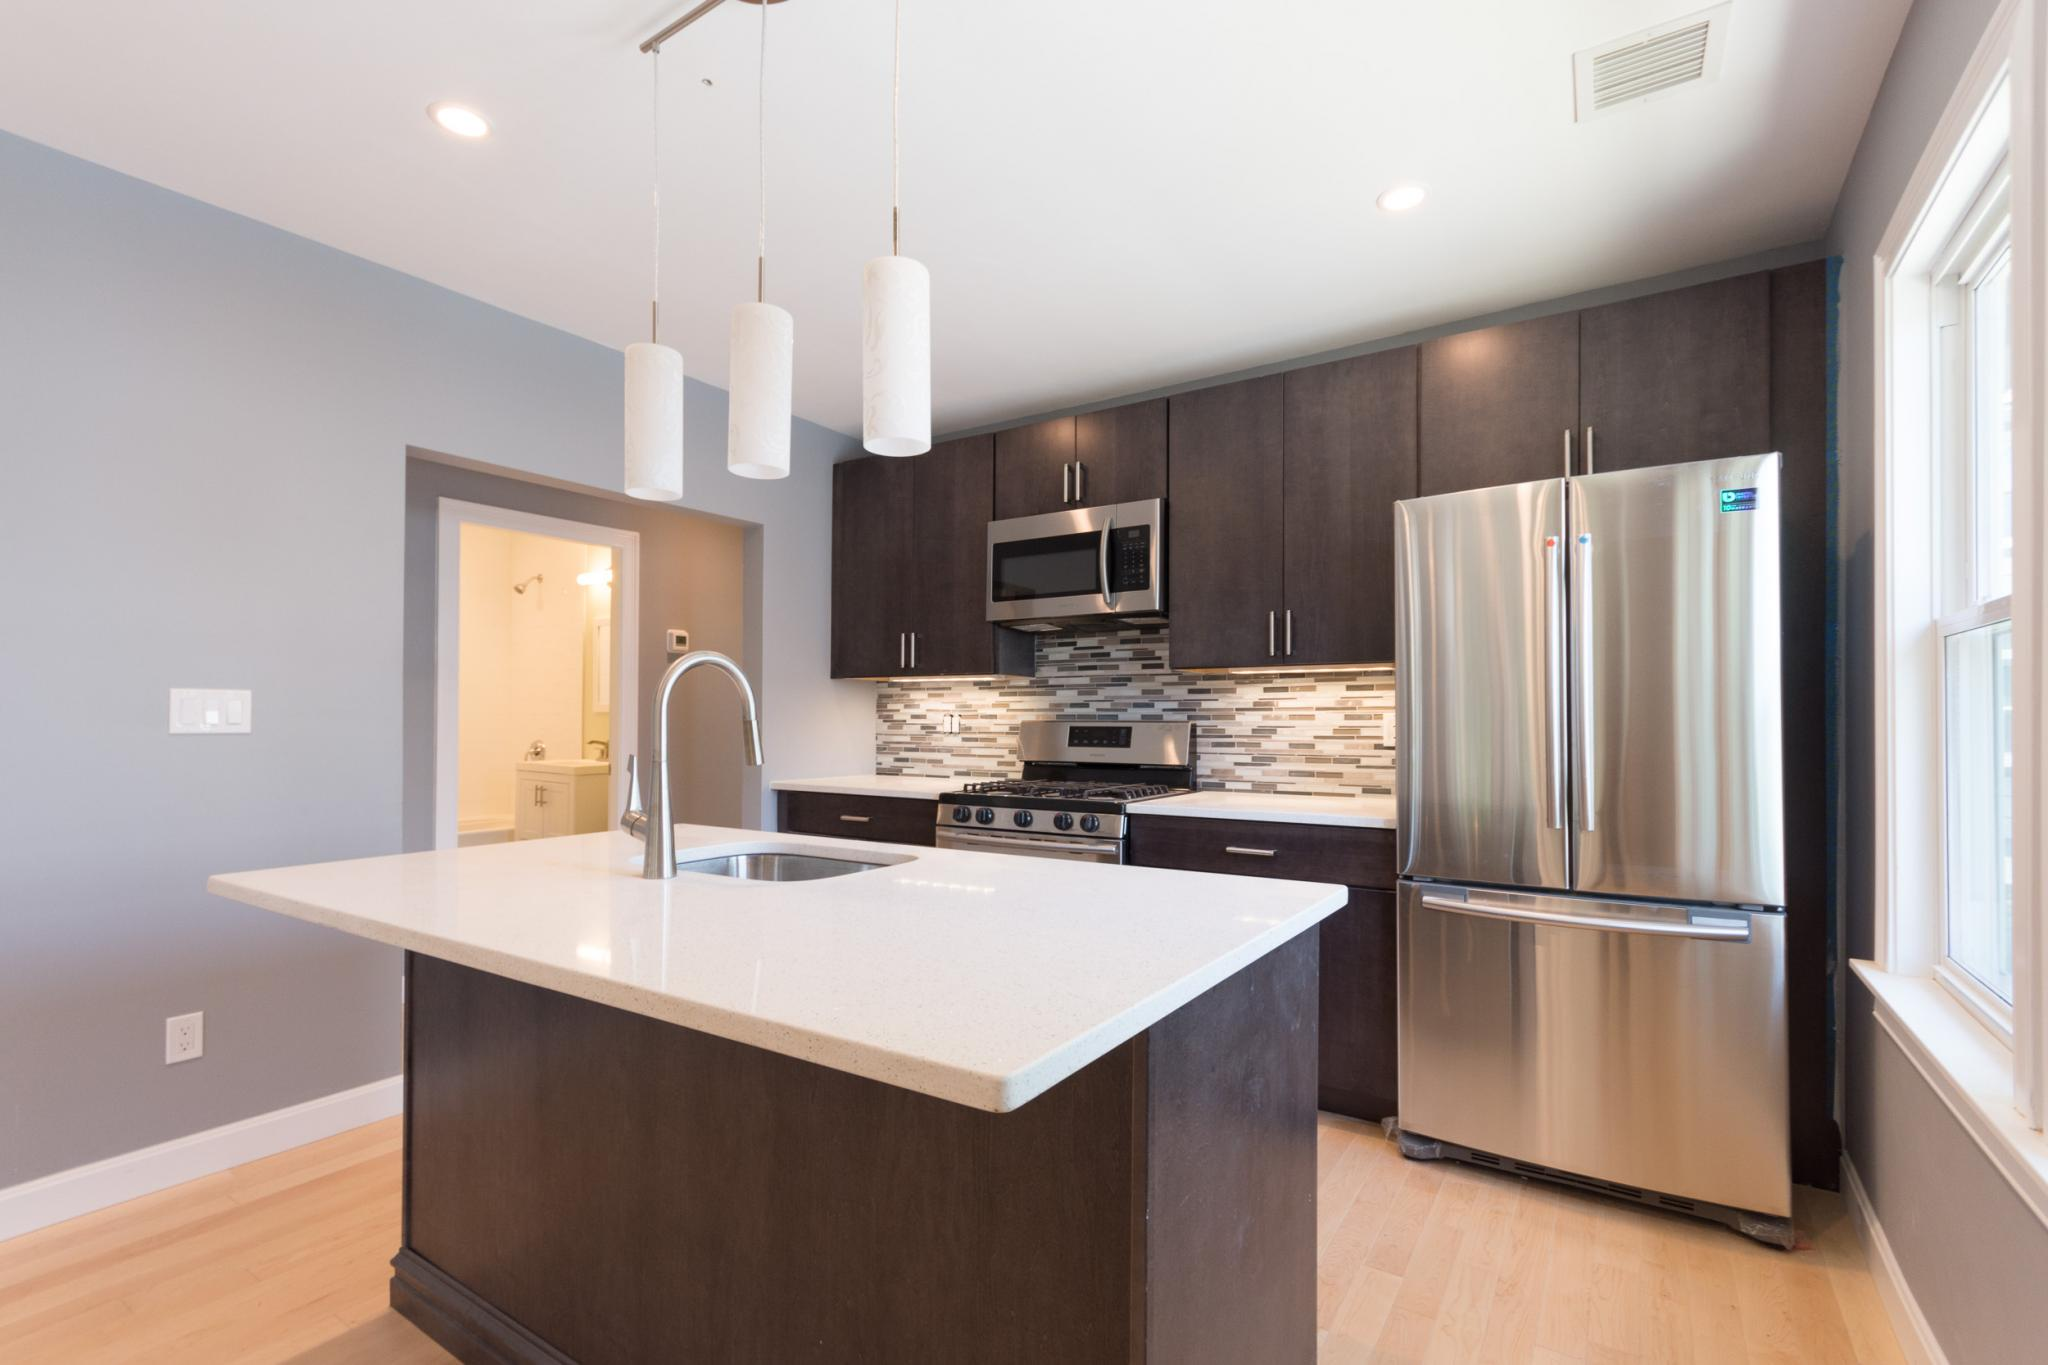 3 Beds, 1 Bath apartment in Boston for $3,350